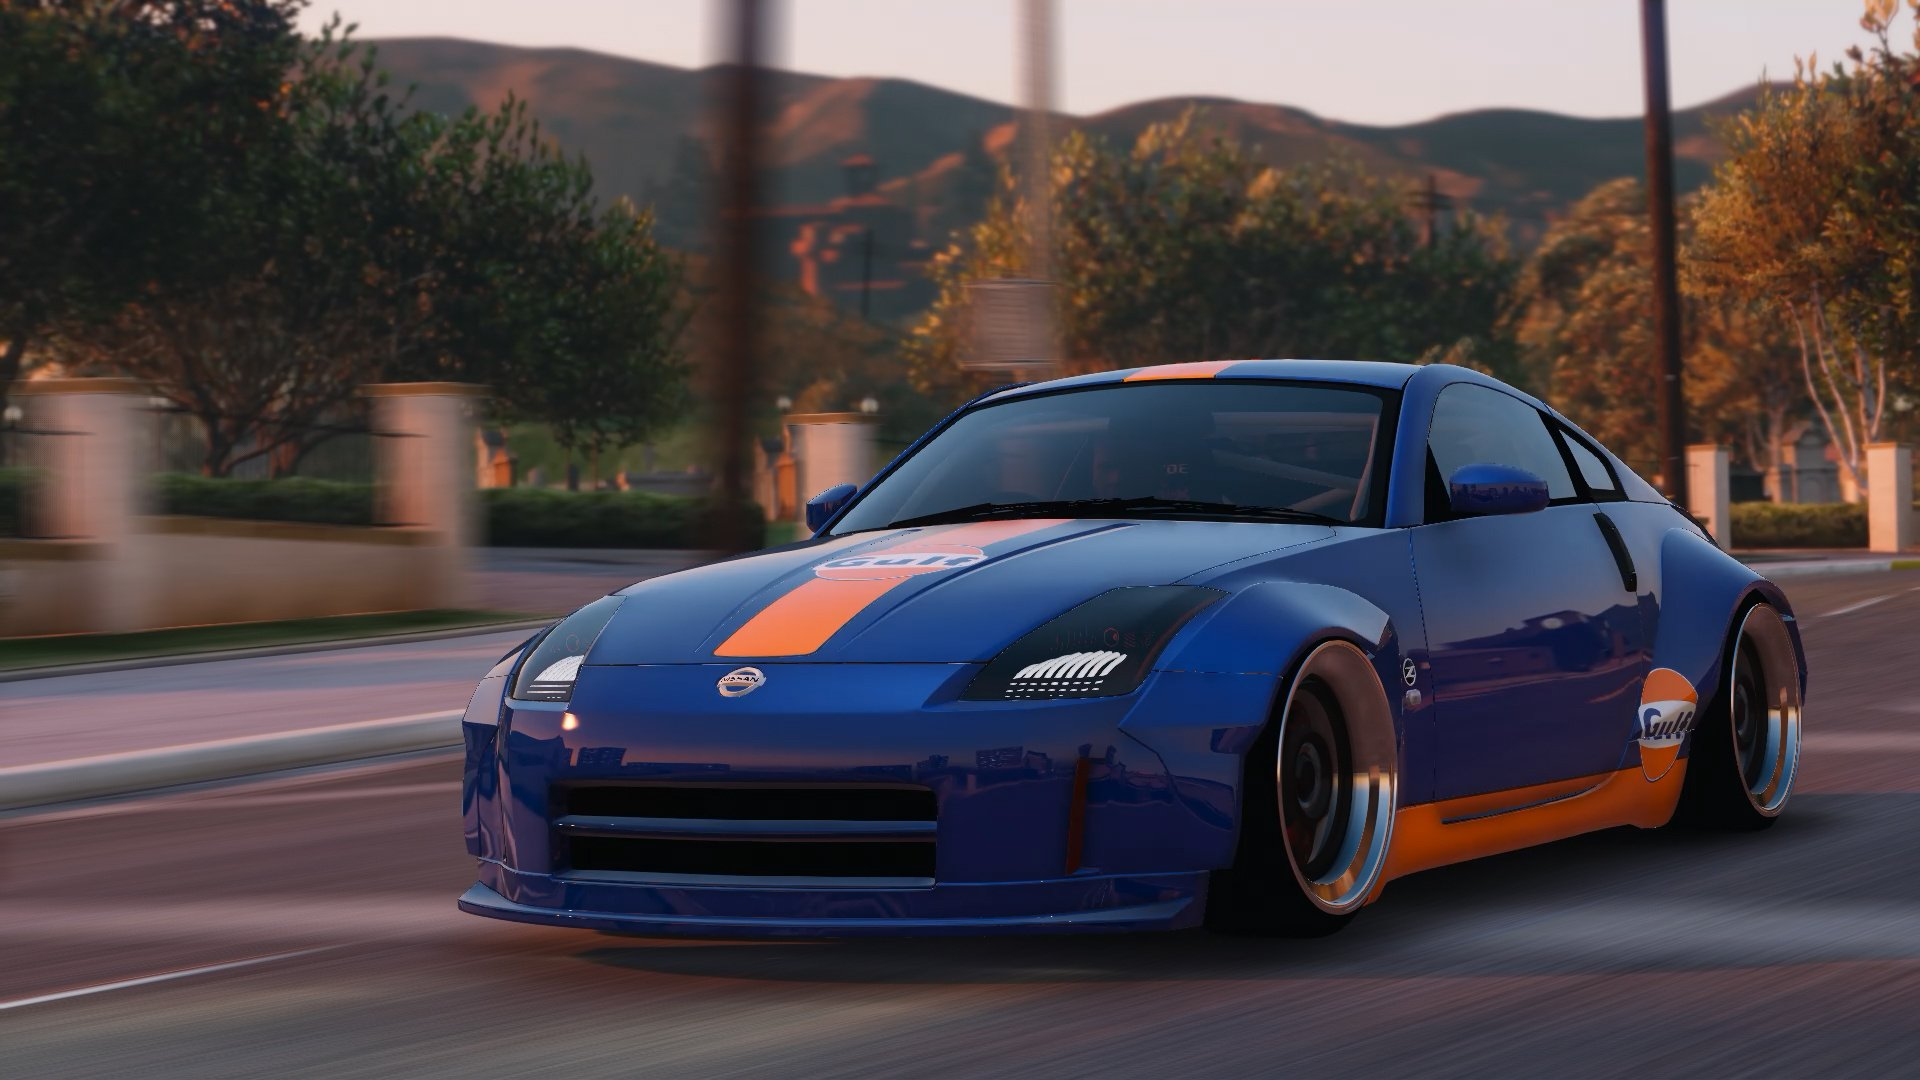 nissan 350z stardast add on liveries template gta5. Black Bedroom Furniture Sets. Home Design Ideas